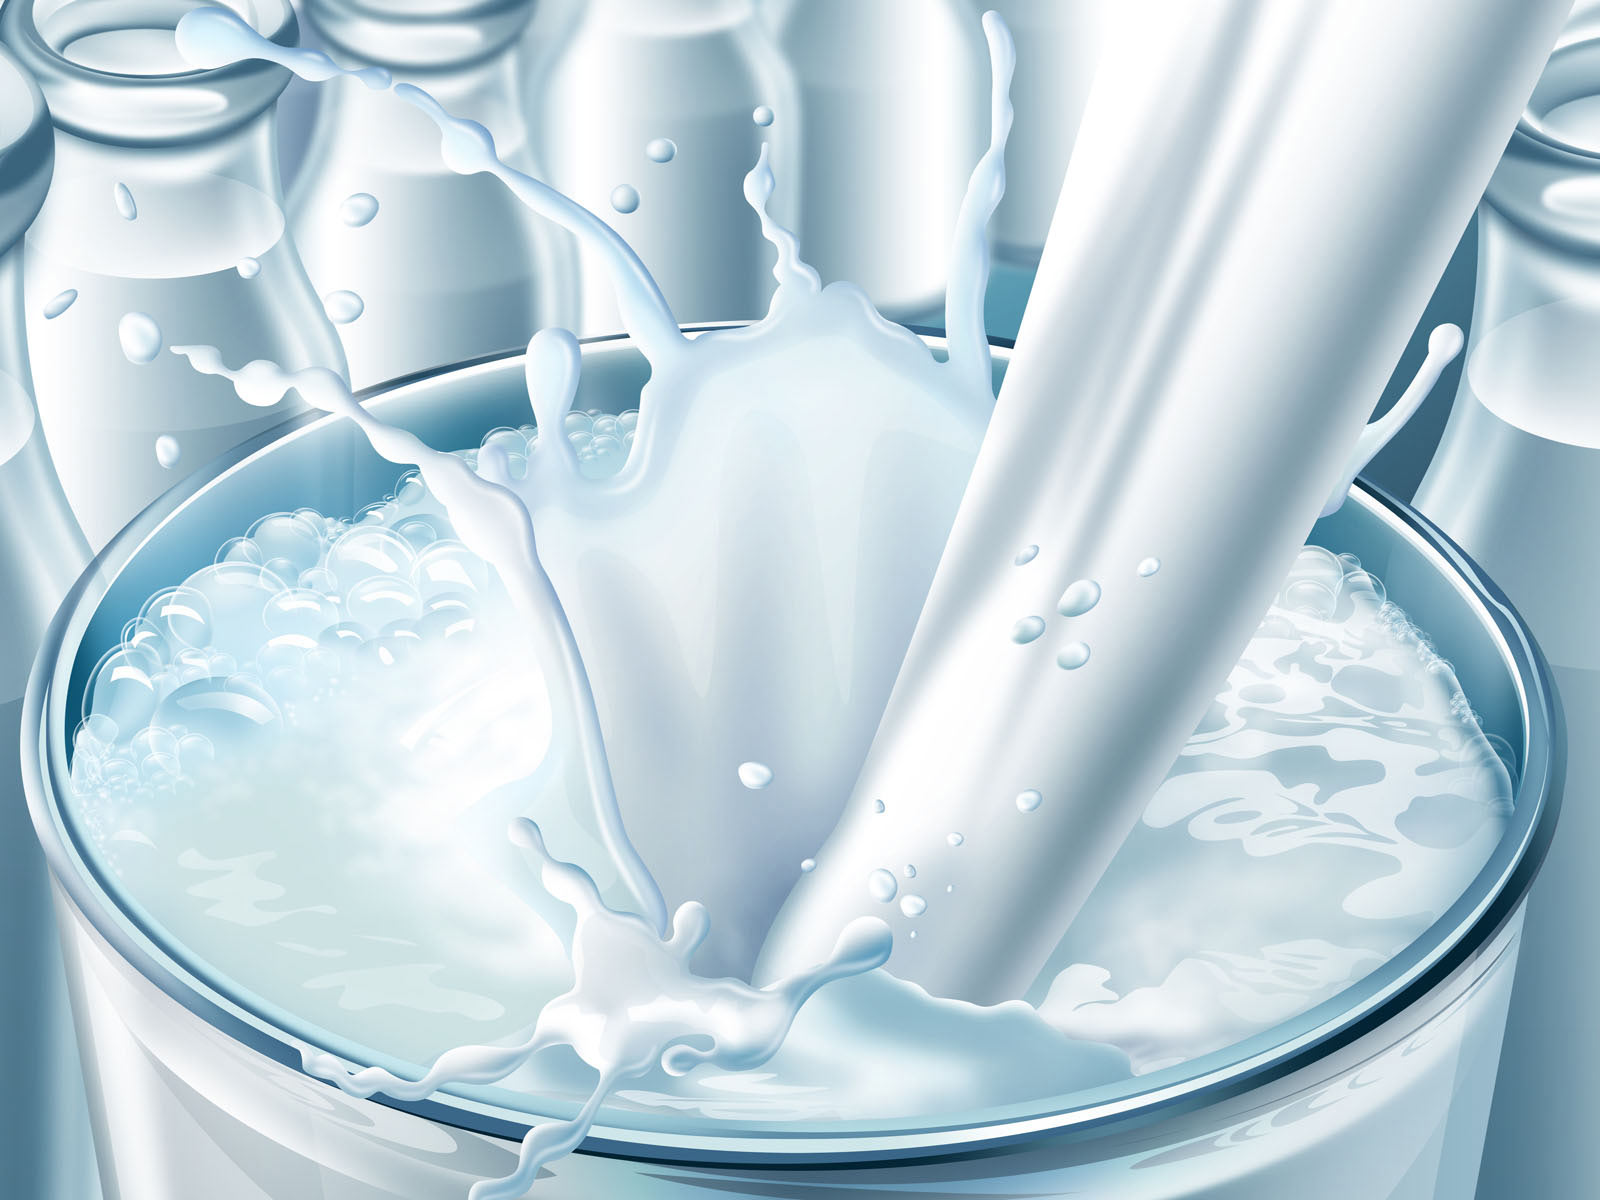 What is A2A2 Milk?